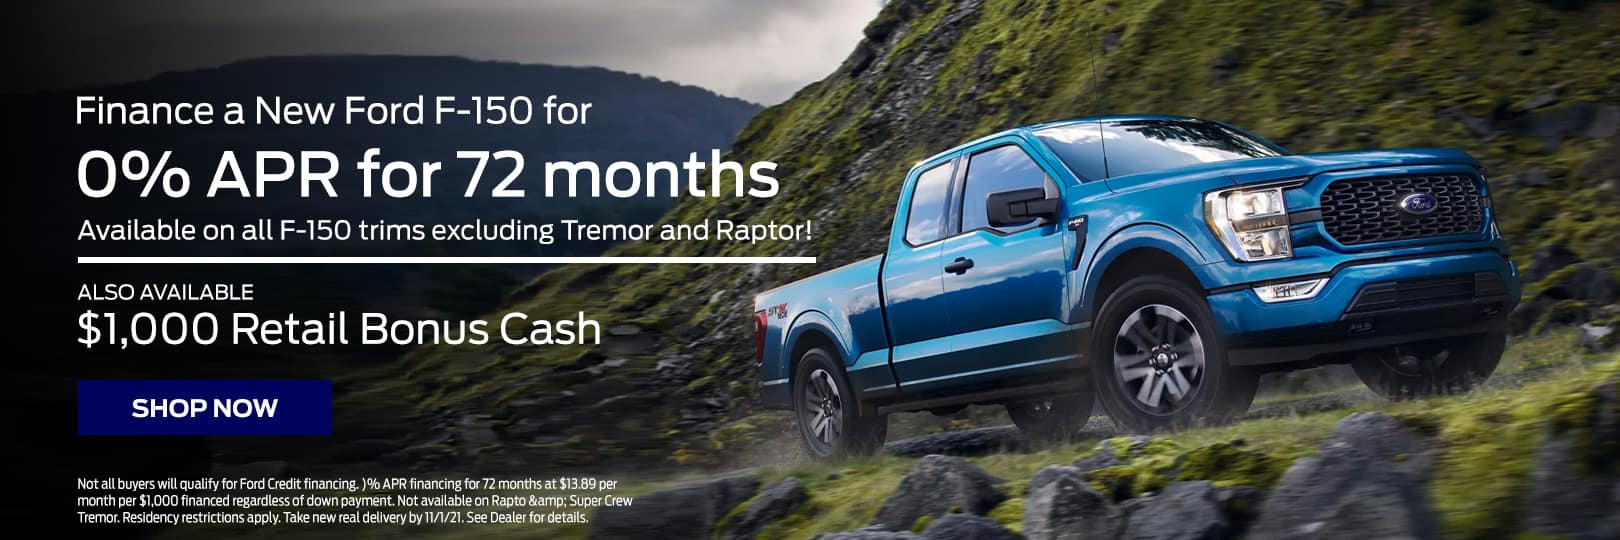 Finance a New 2021 F-150 for 0% APR for 72 Mos Available on all F-150 trims excluding Tremor and Raptor! $1000 Retail bonus cash also available!